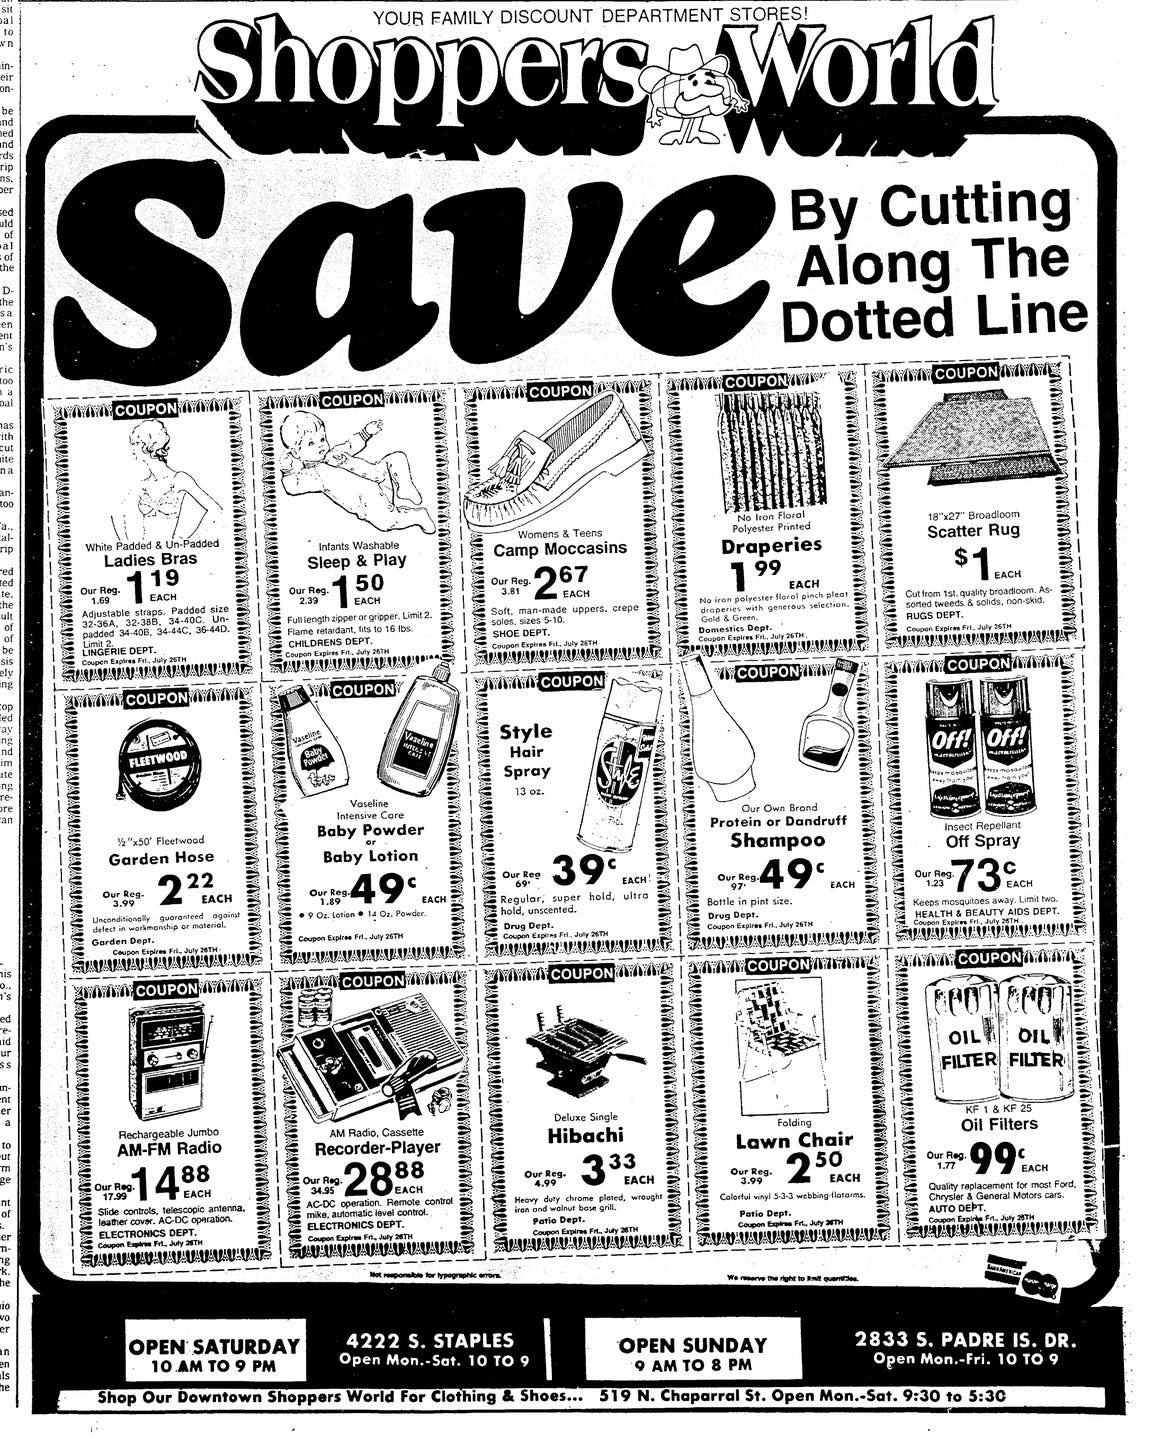 A Shoppers World ad from the Corpus Christi Caller on July 25, 1974.